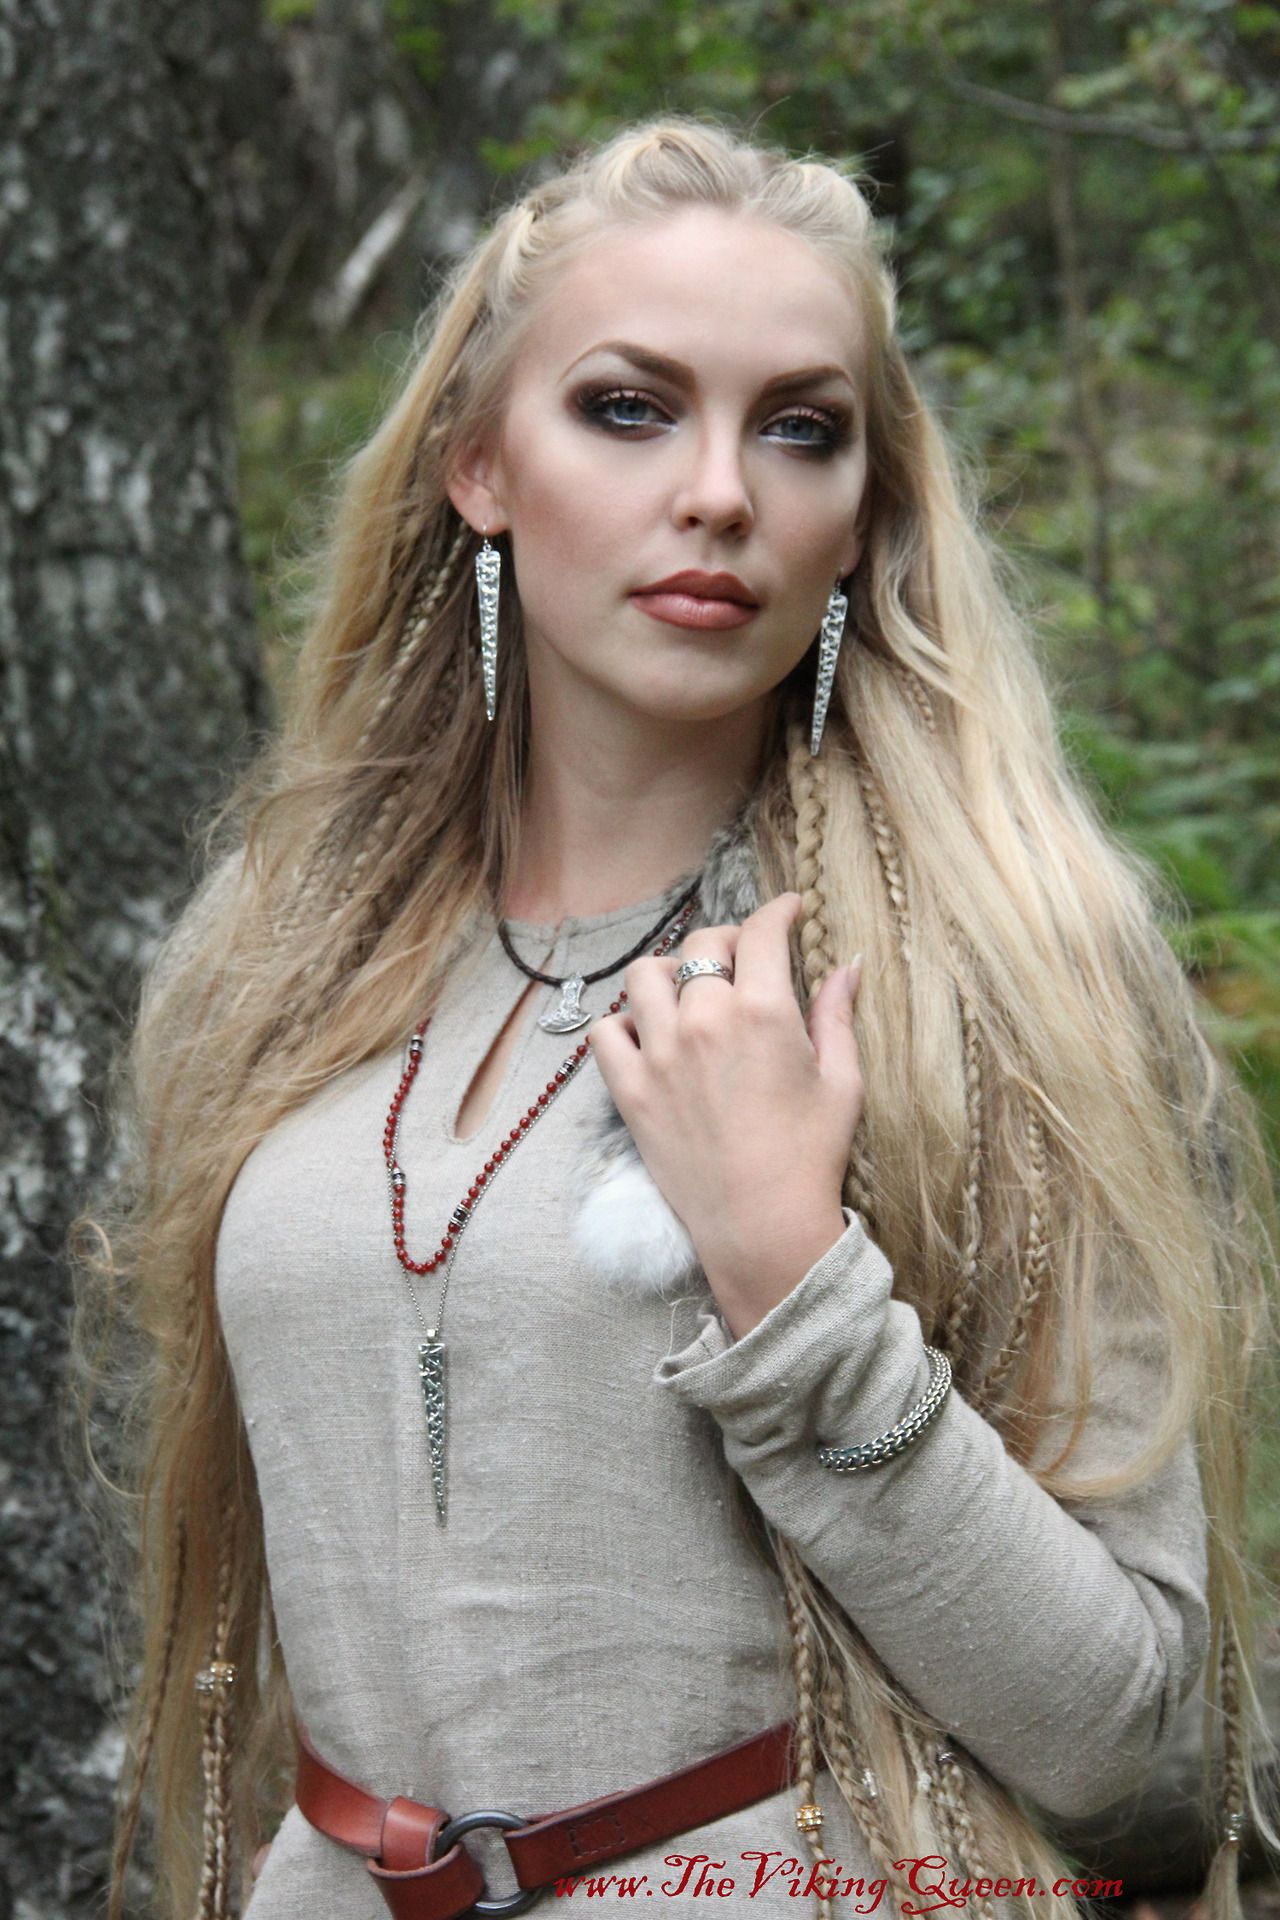 Although this is a model photo, it was a clear belief that the Vikings had the most beautiful women around him, and married the youngest and most beautiful of them all. Was not there some in the village, they had to take on the prowl, in other areas of the country to pick up girls / women who would bear them a lot of children..